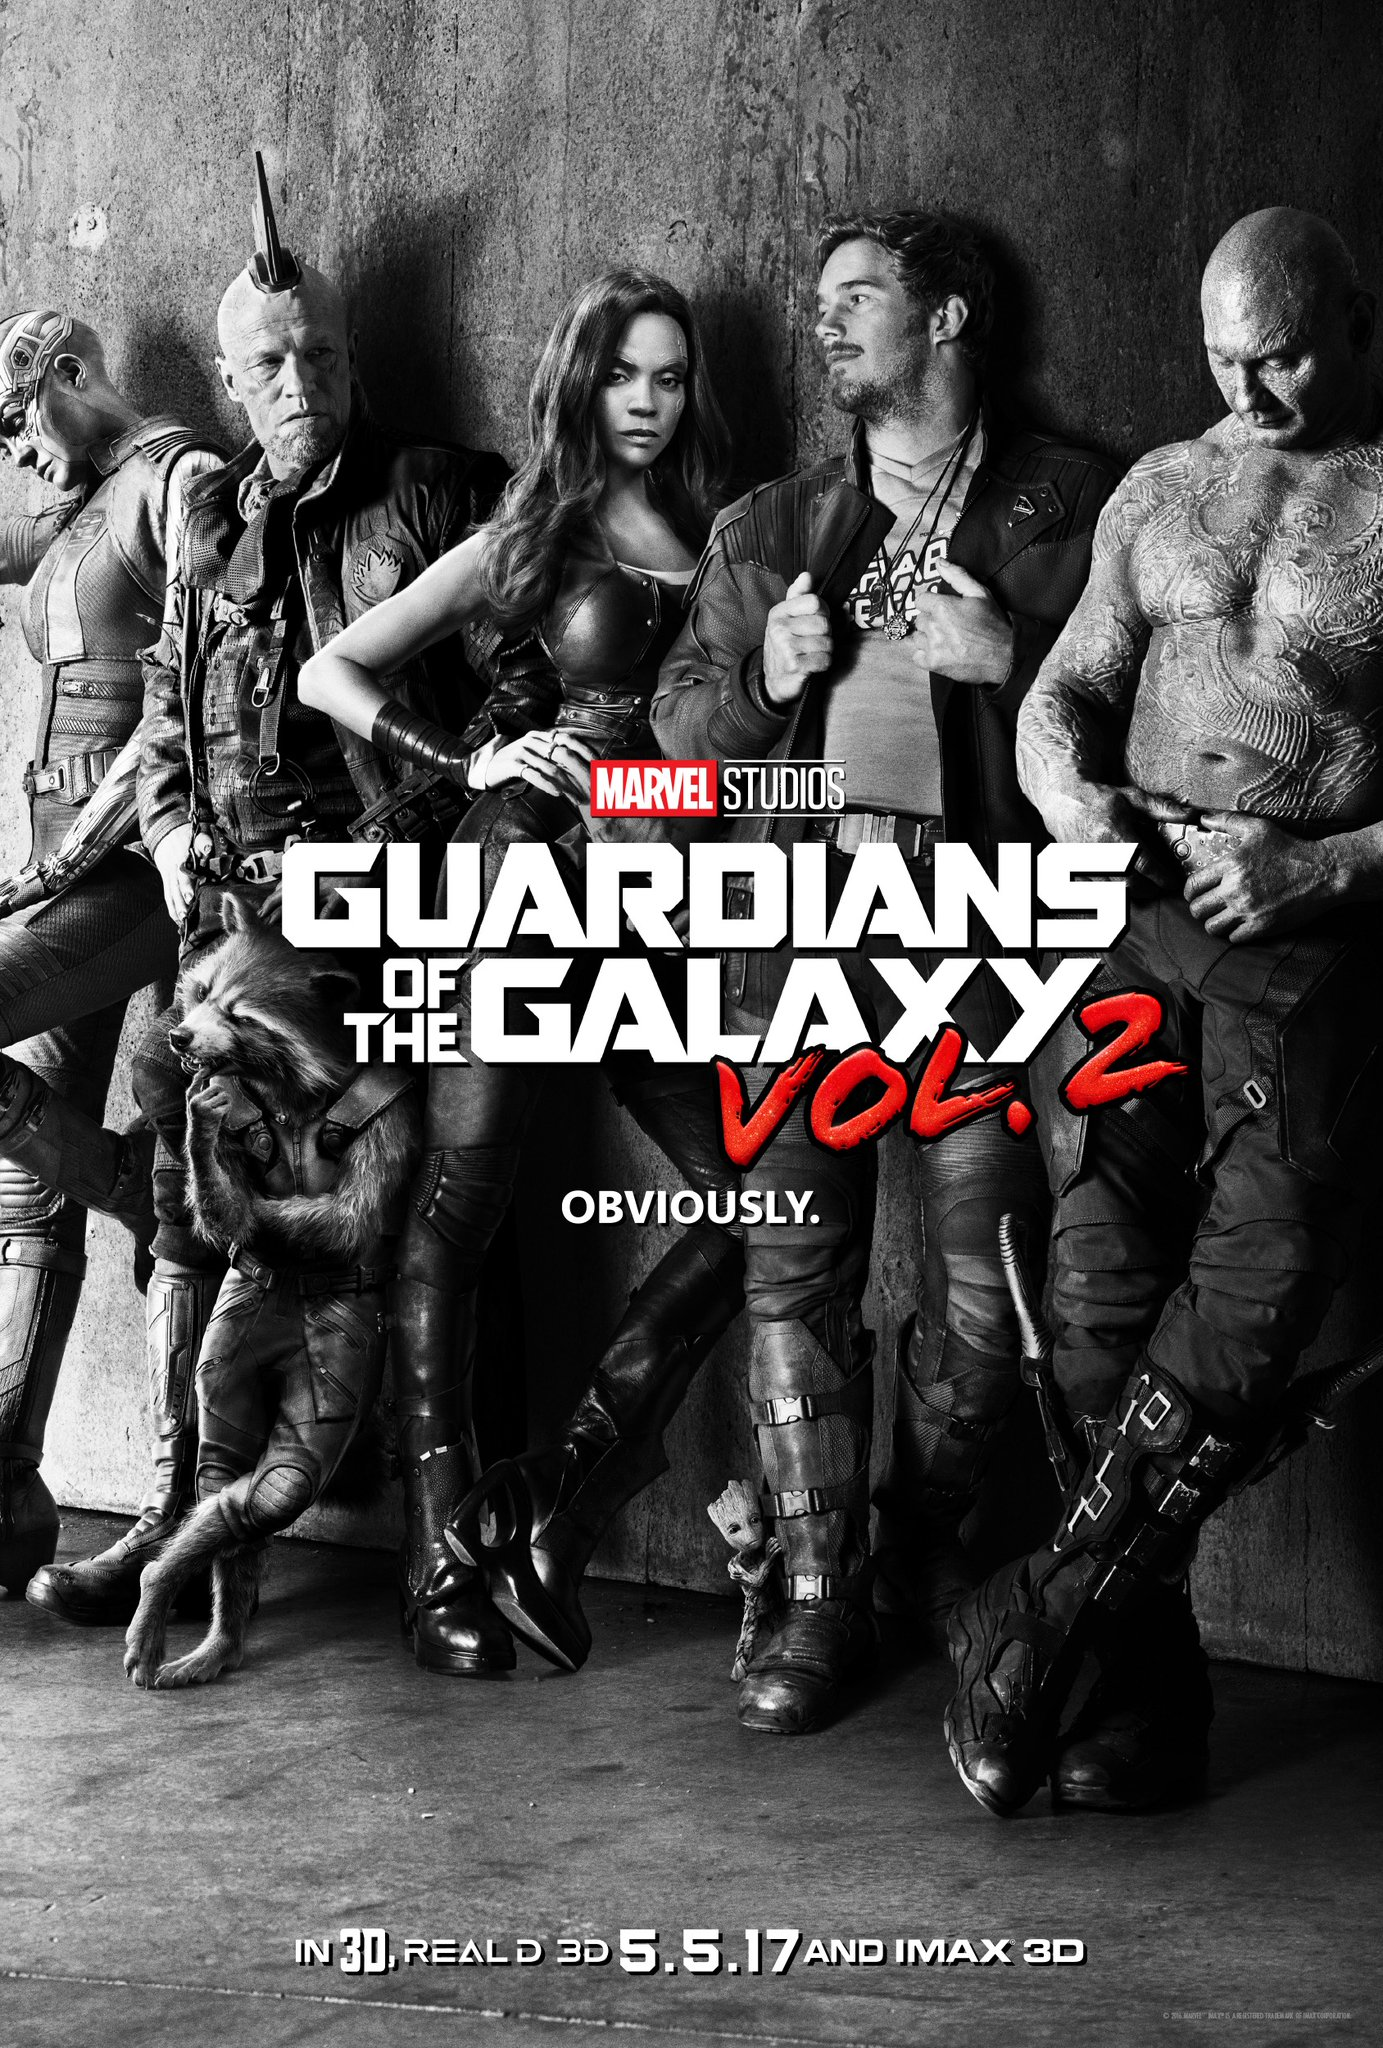 guardians of the galaxy vol 2 poster and teaser trailer has us